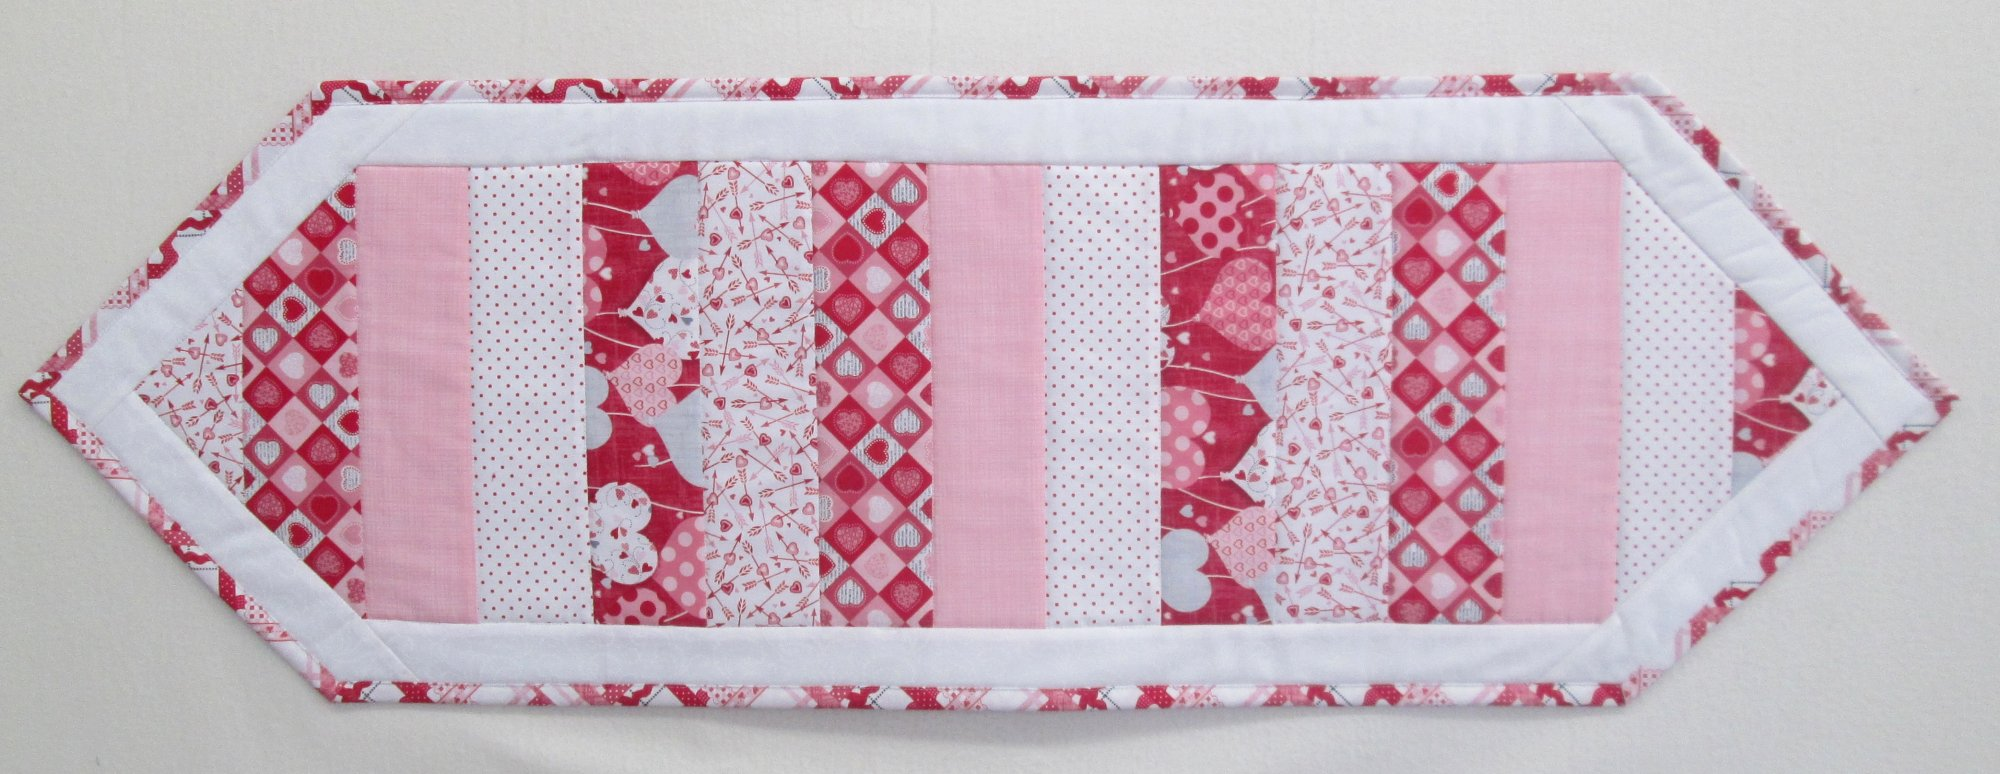 Dear Heart Happy Hearts Table Runner Kit 13 x 42